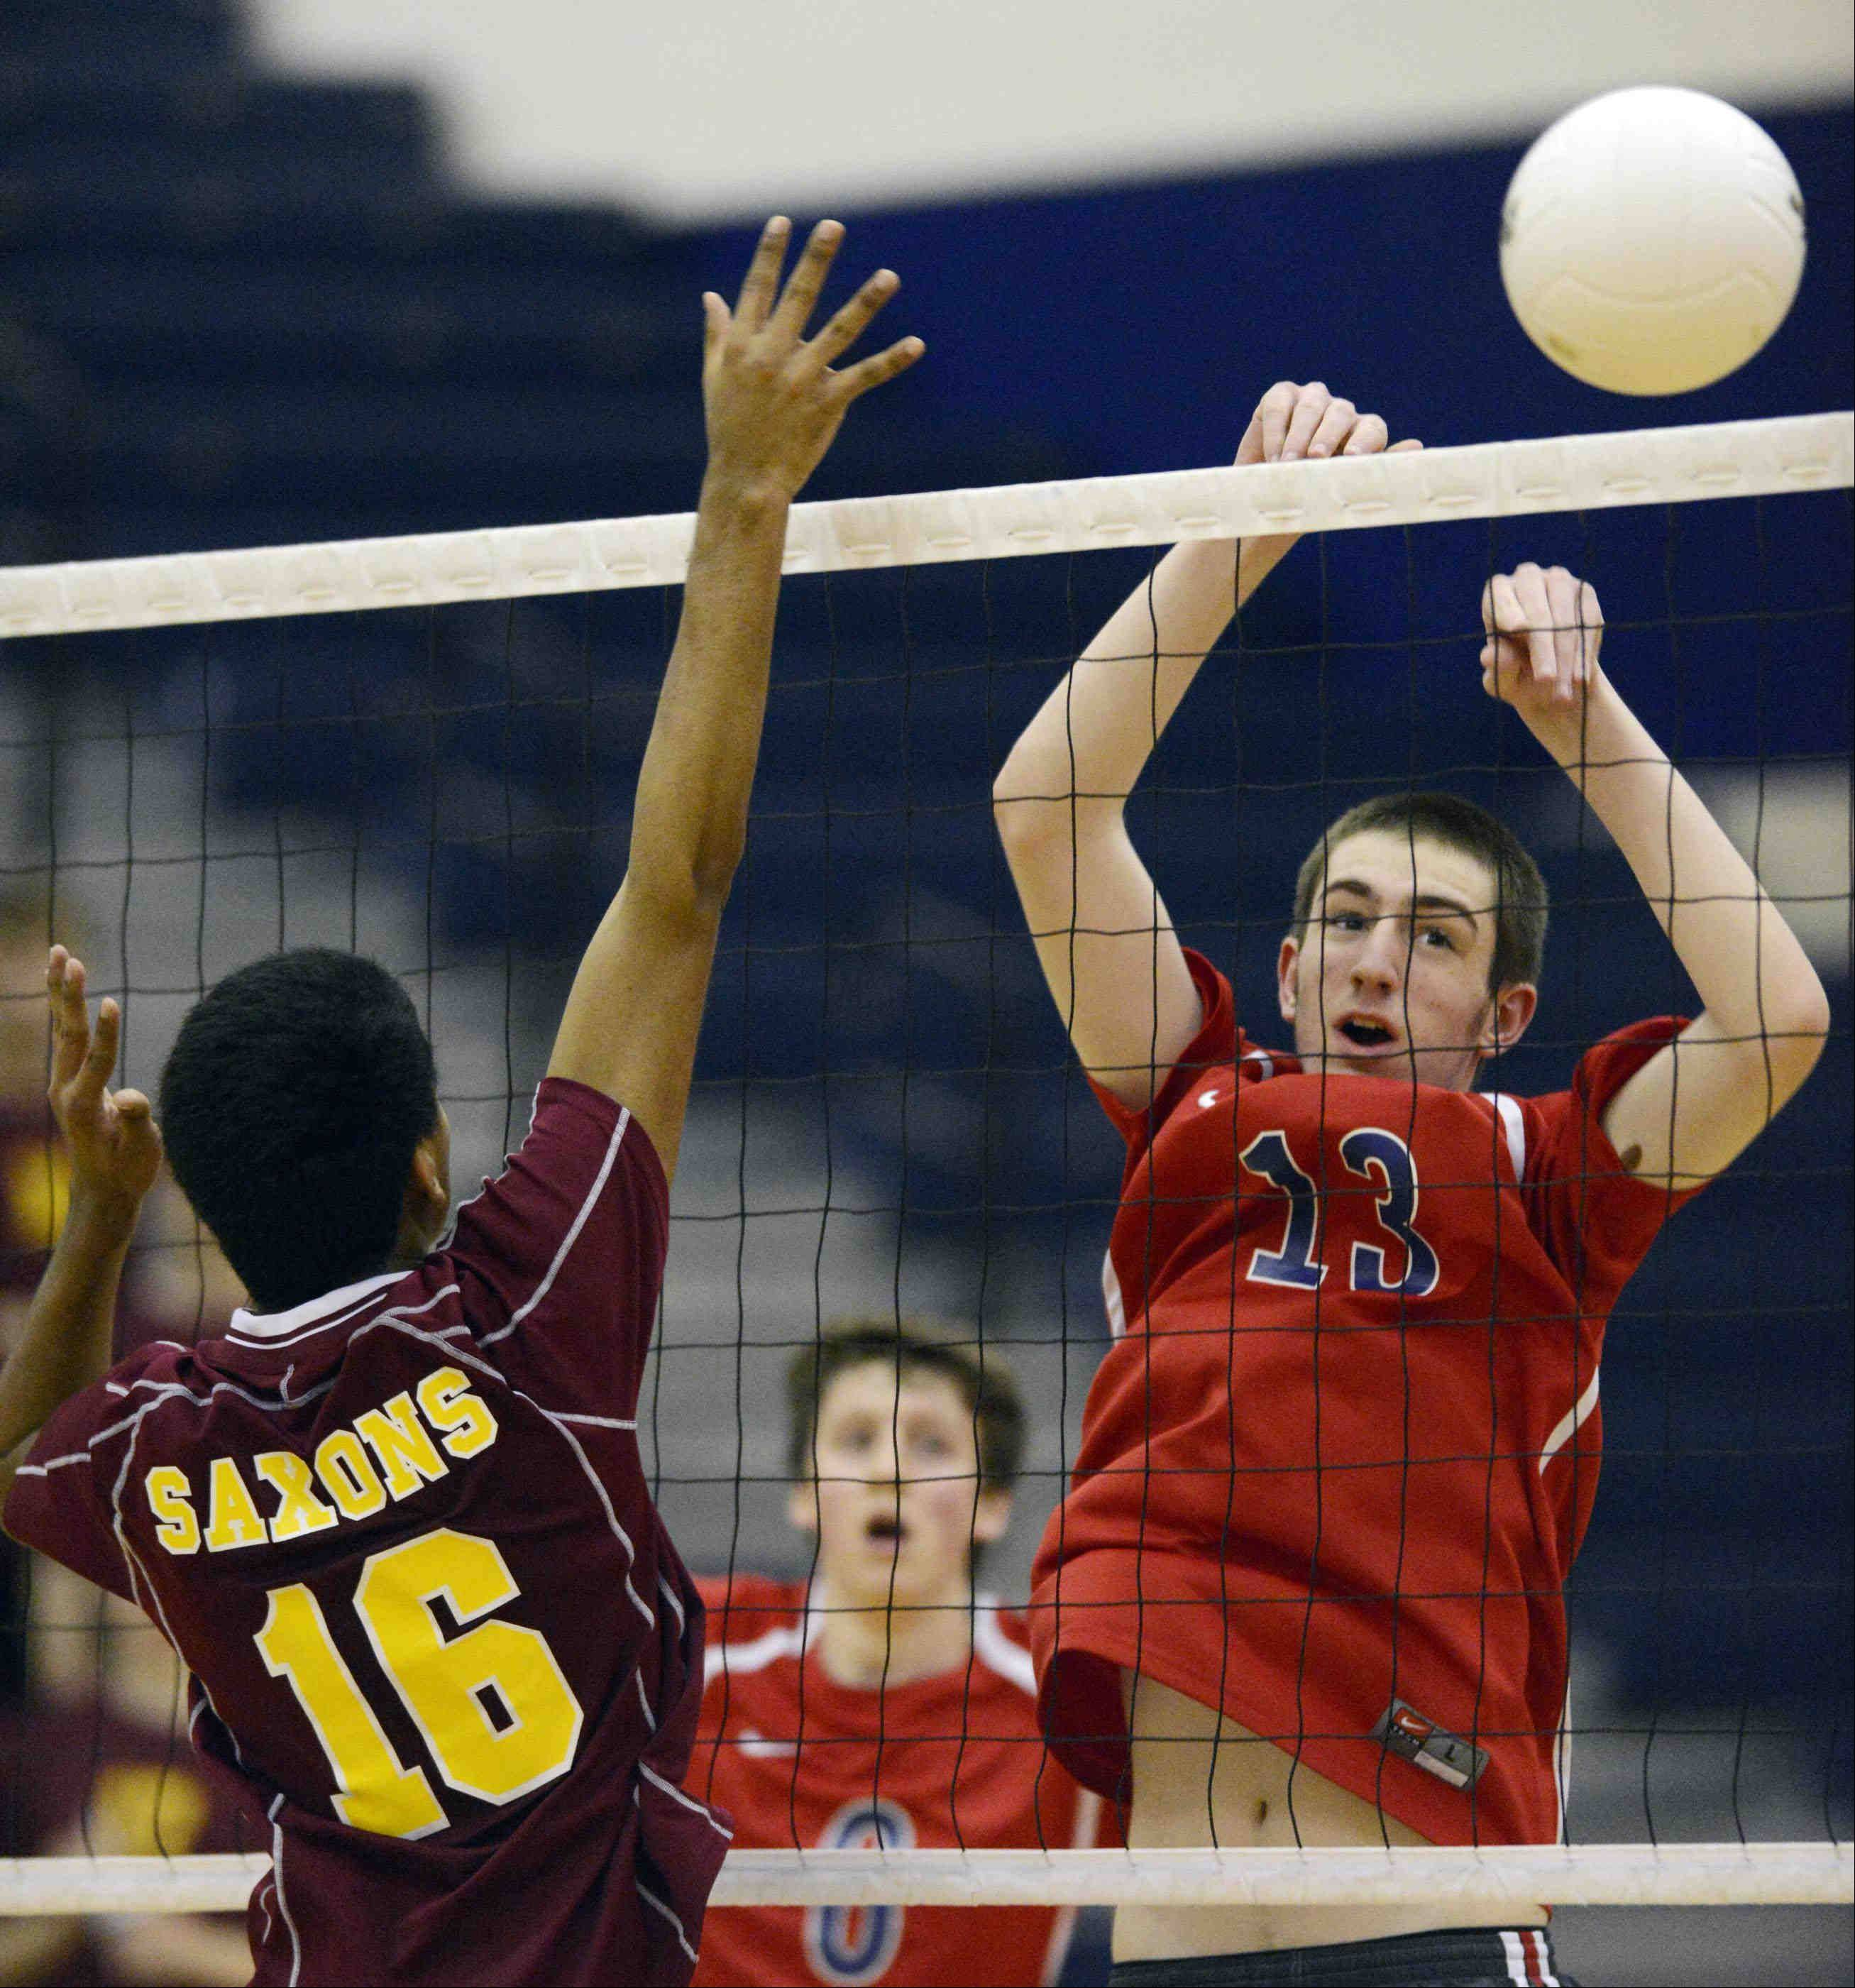 South Elgin's Ian Saxton hits the ball past Schaumburg's Nidhin Thomas Thursday in South Elgin.